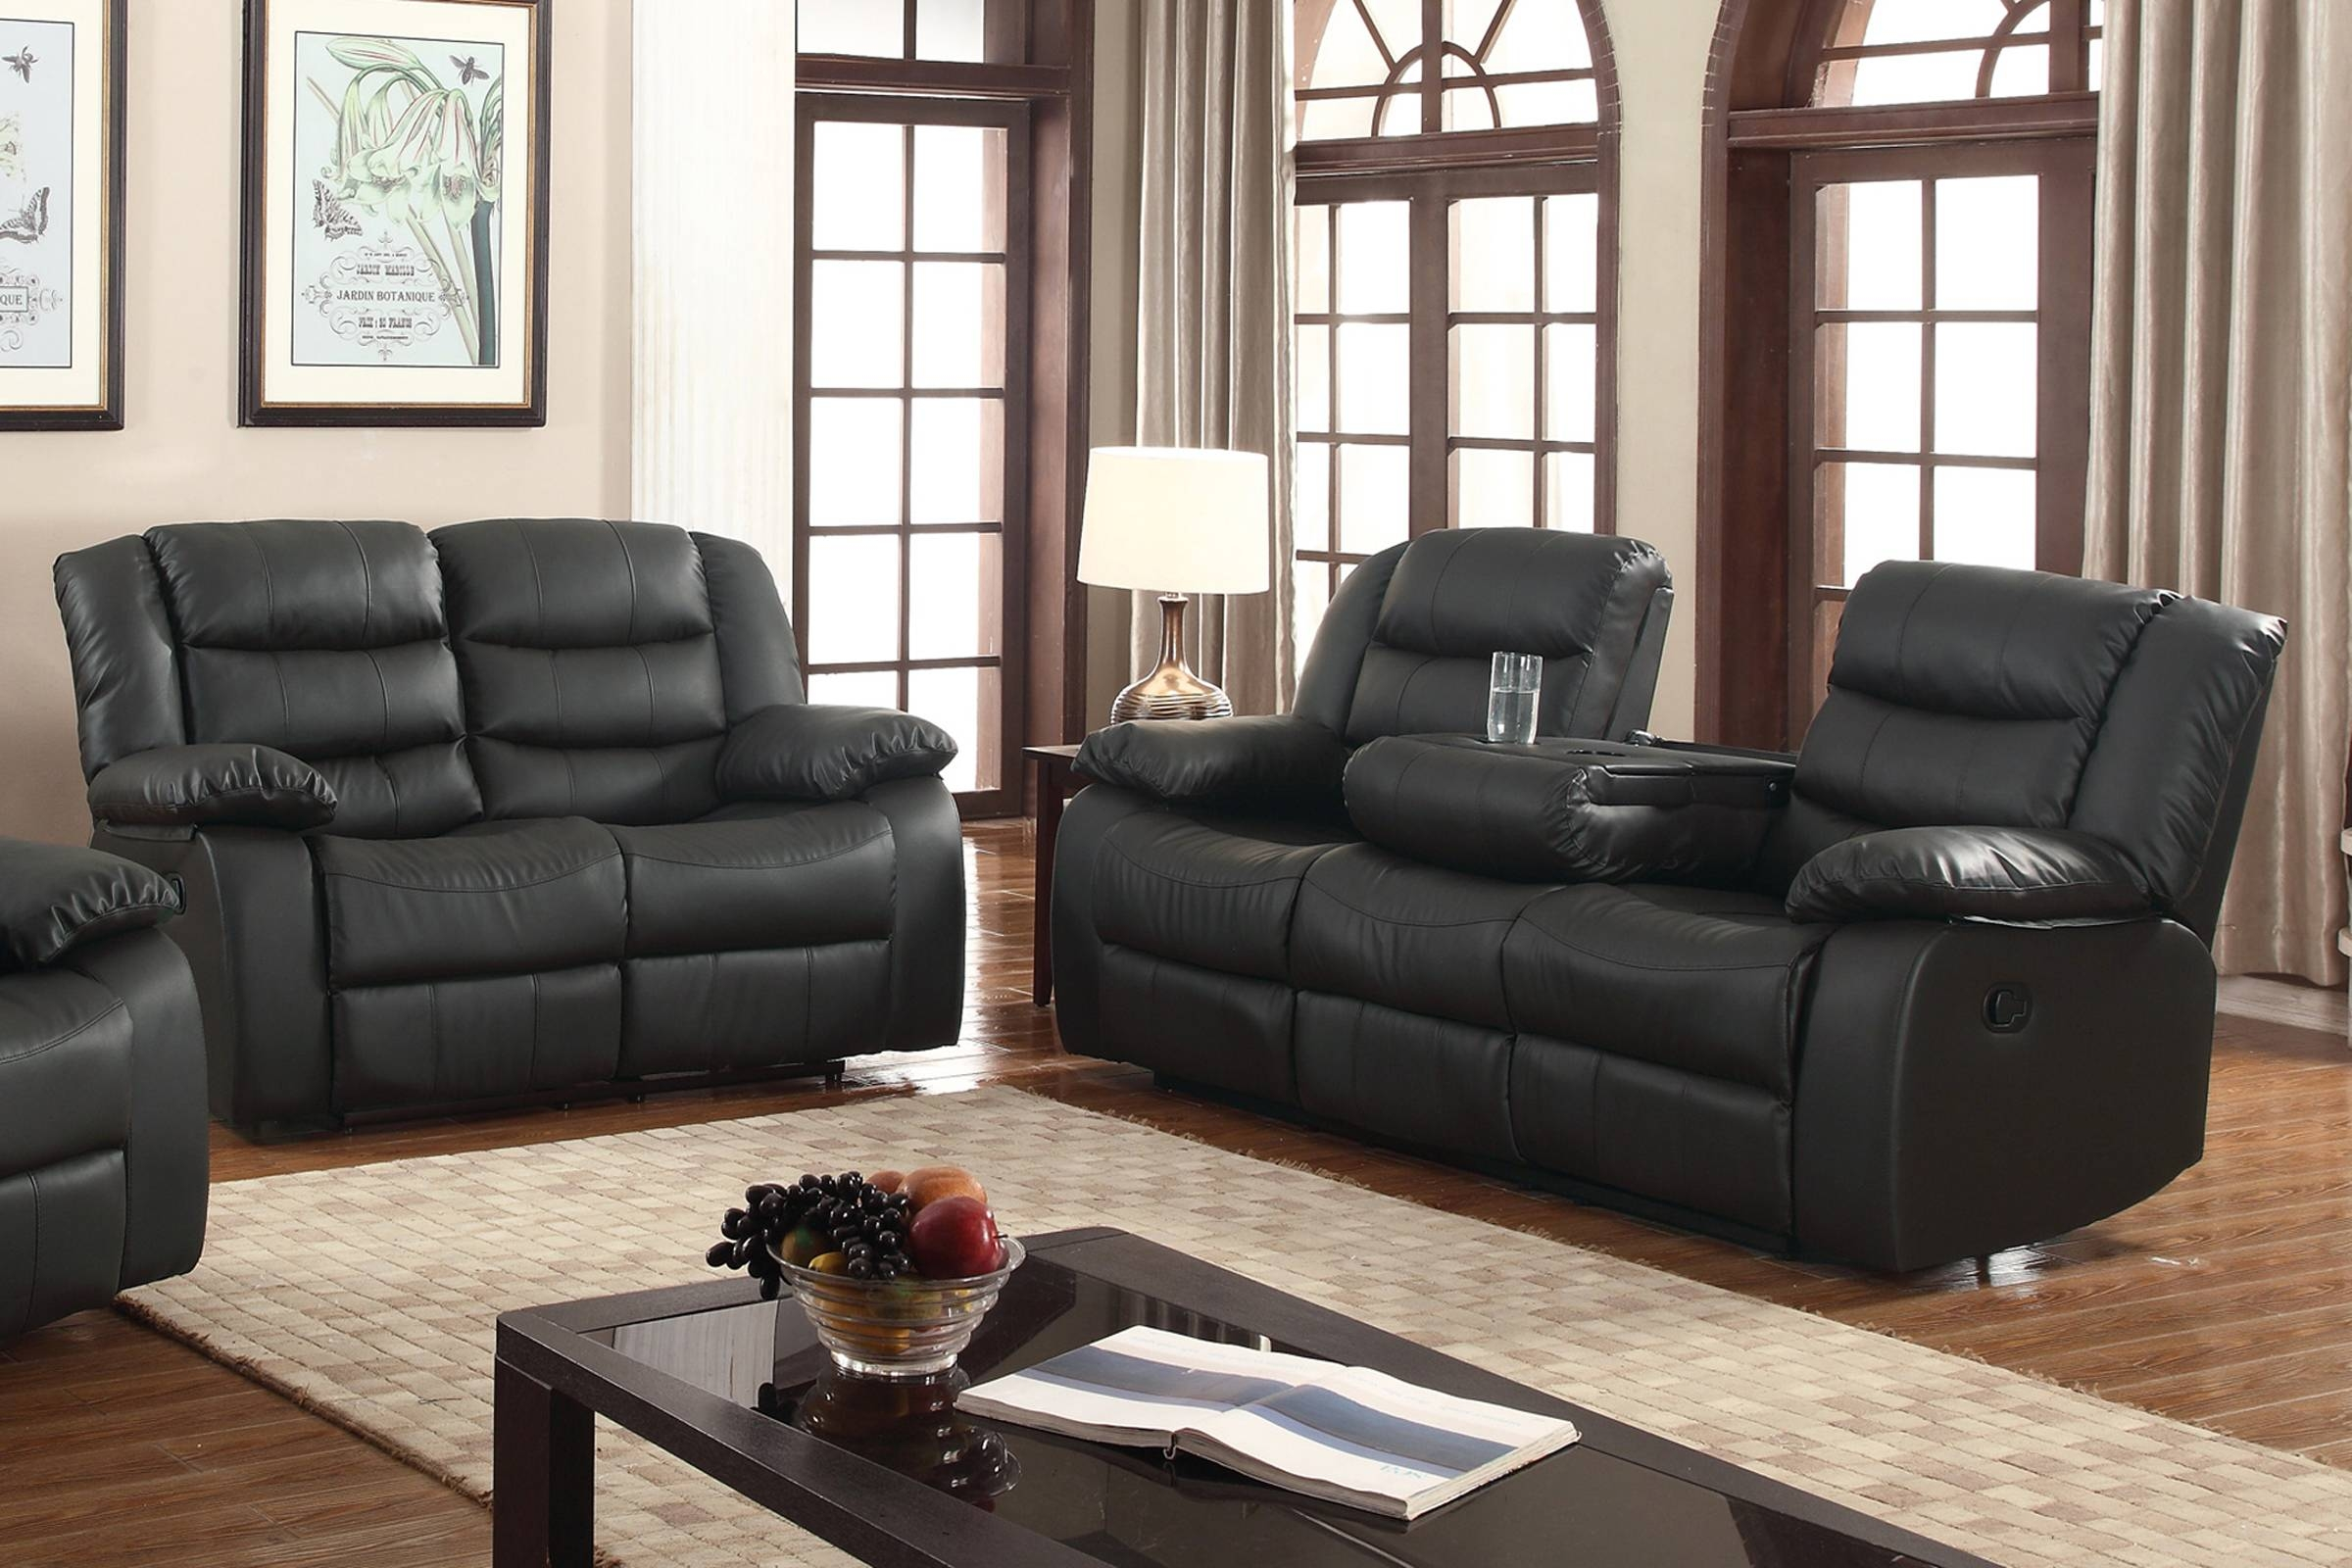 Sofas Center : Excellent Sofa And Recliner Sets Picture Concept With Jedd Fabric Reclining Sectional Sofa (Image 29 of 30)